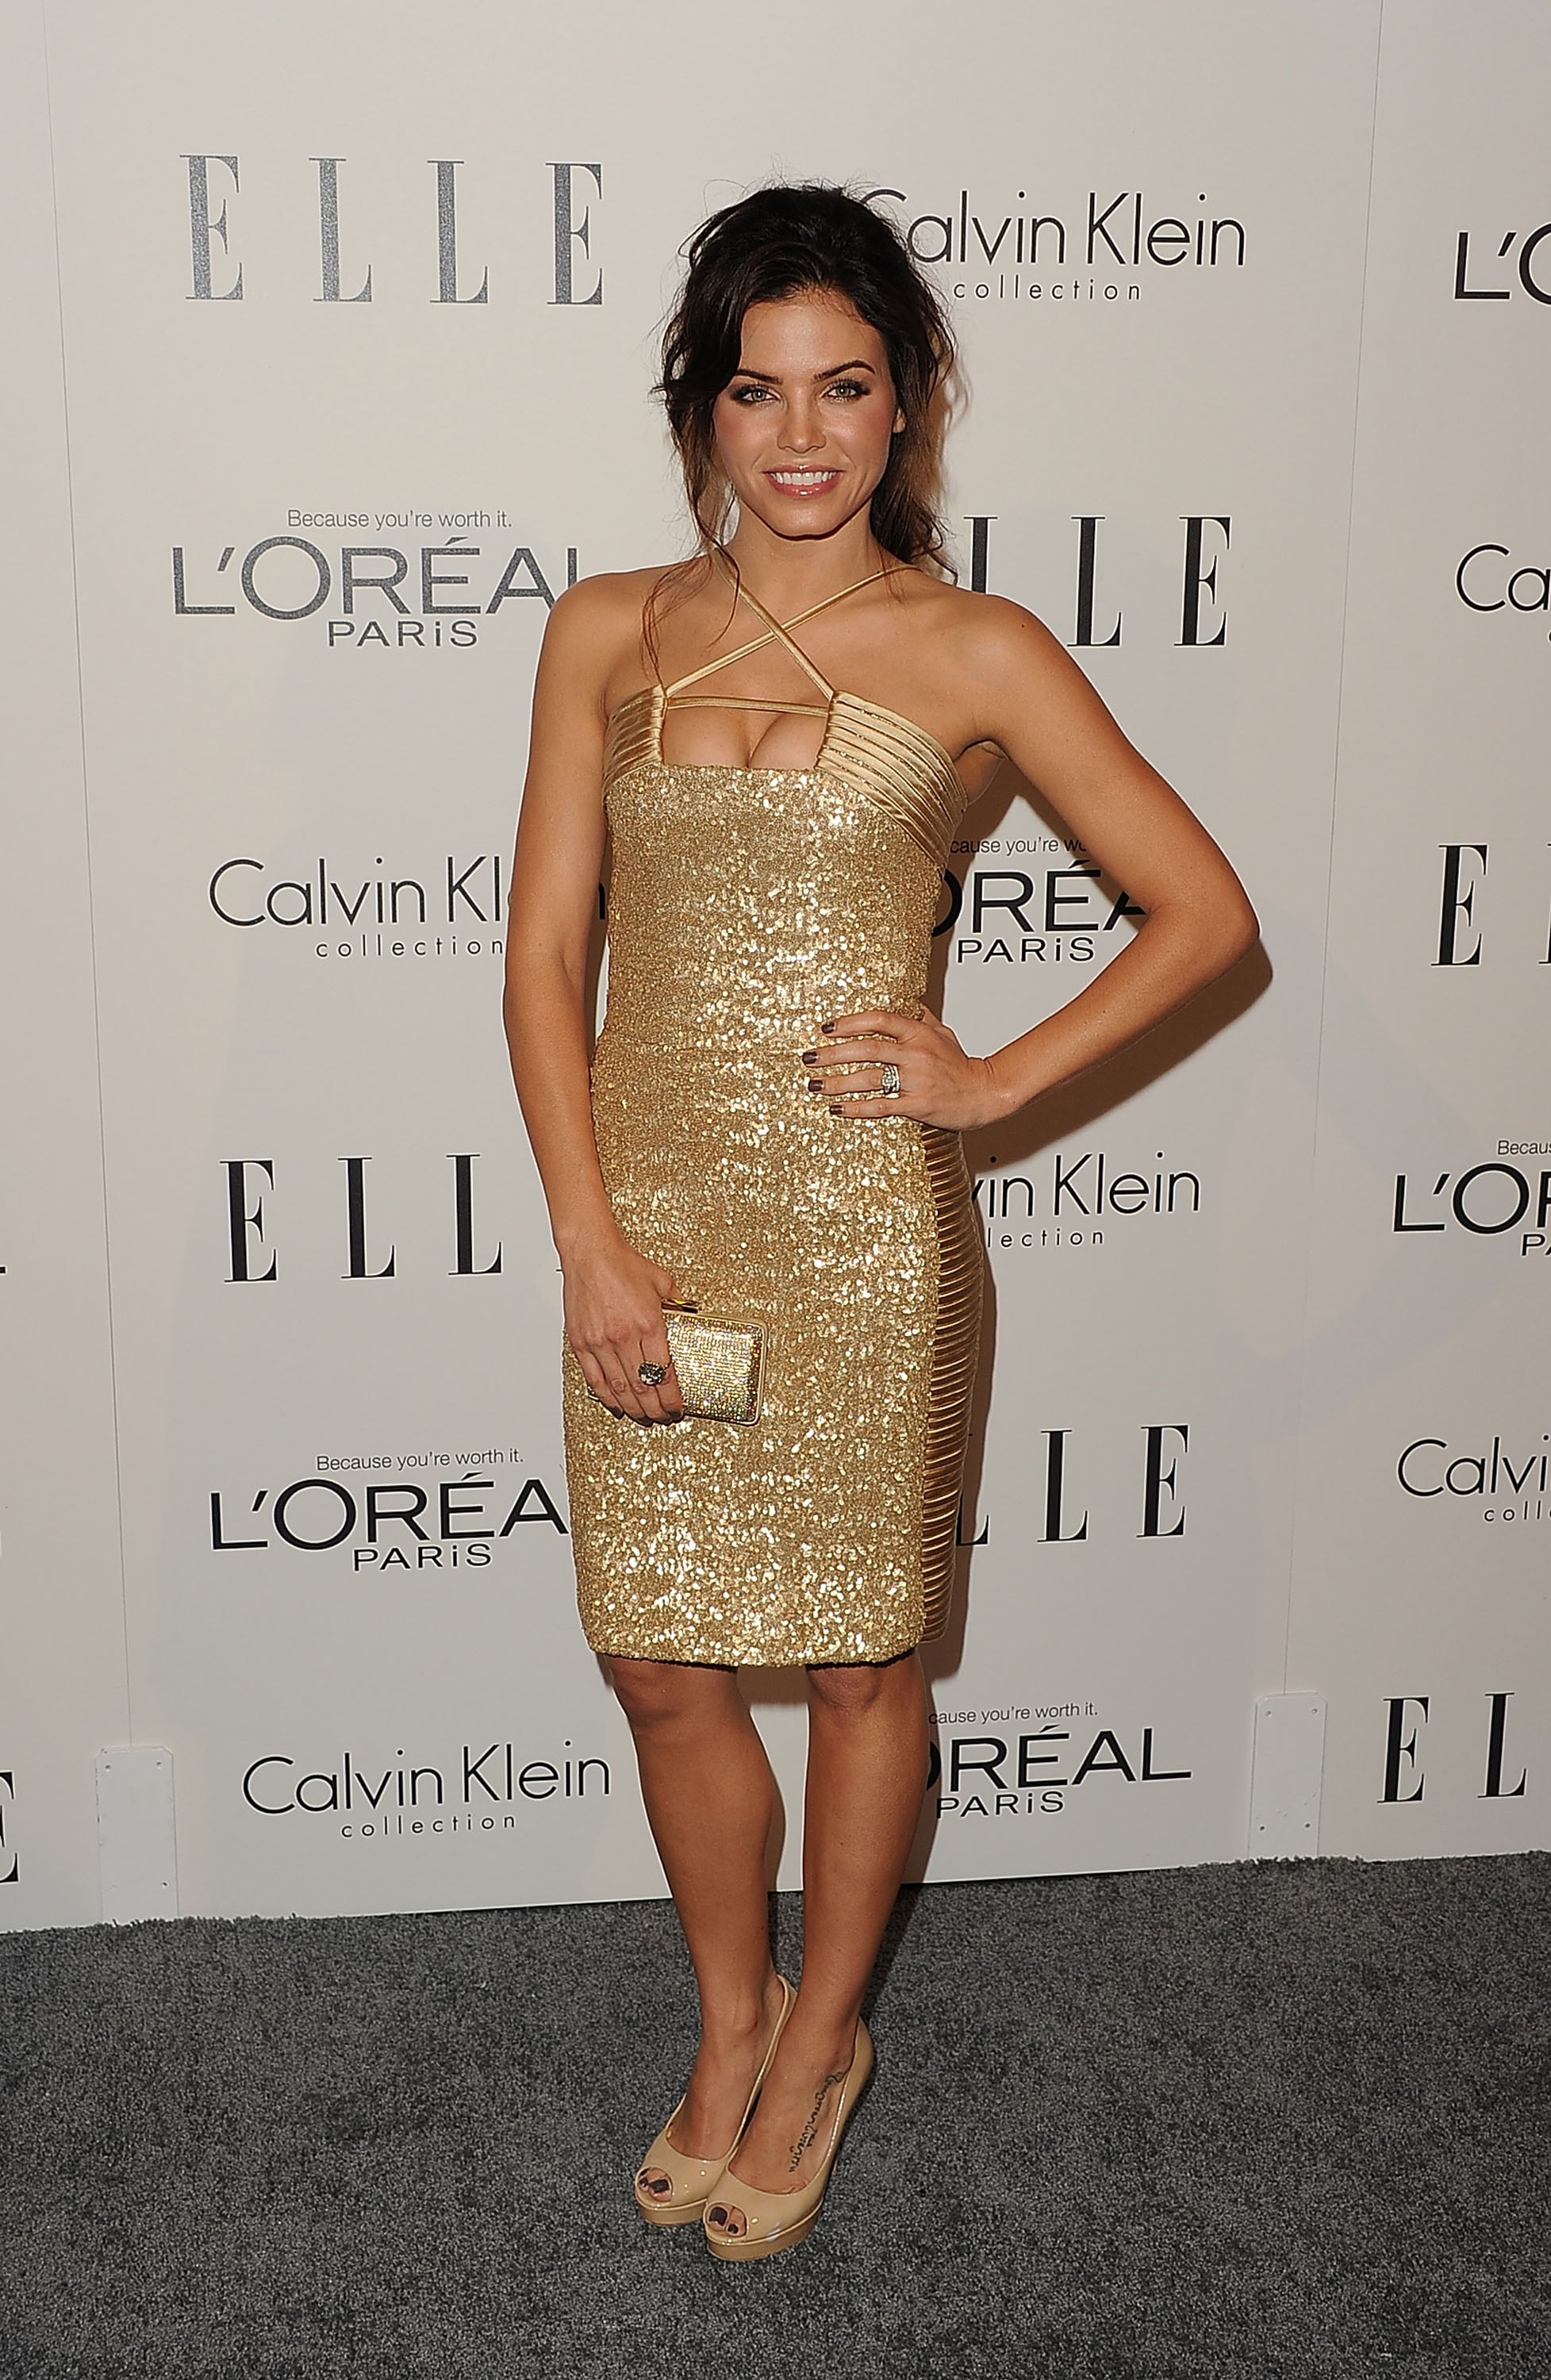 Jenna Dewan worked a gold dress on the red carpet.